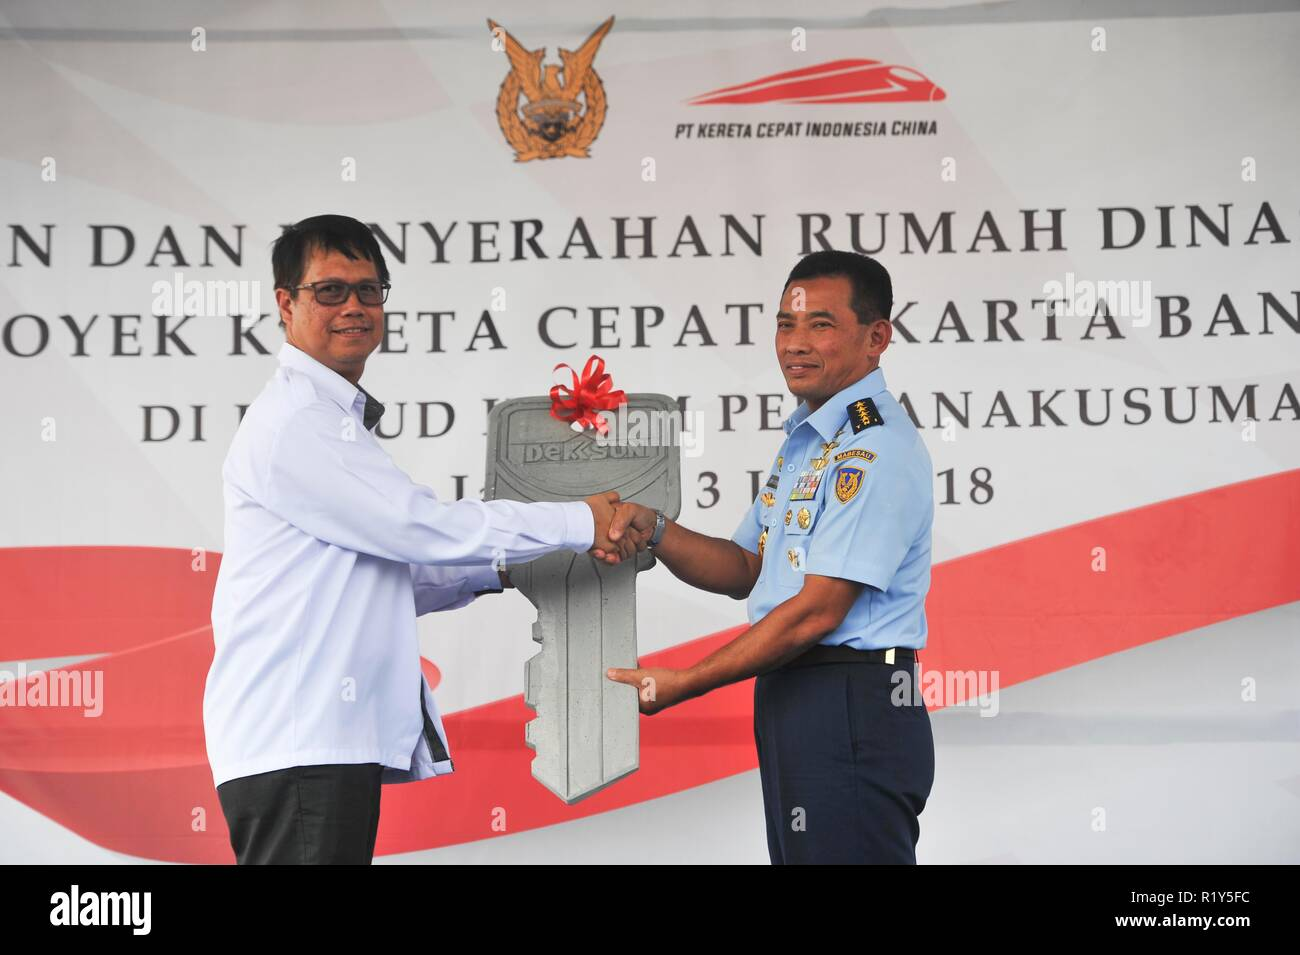 Beijing, Indonesia. 3rd July, 2018. KCIC President Director Chandra Dwiputra (L) and Indonesian Air Force Chief of Staff Marshall Yuyu Sutisna attend the handover ceremony in Halim Perdanakusumah air base in eastern Jakarta, Indonesia, July 3, 2018. China-Indonesia joint firm carrying out the Jakarta-Bandung High-Speed Railway project, KCIC, handed over on Tuesday a housing cluster to compensate houses and land of Indonesian air force personnel which were used by the project. Credit: Zulkarnain/Xinhua/Alamy Live News - Stock Image